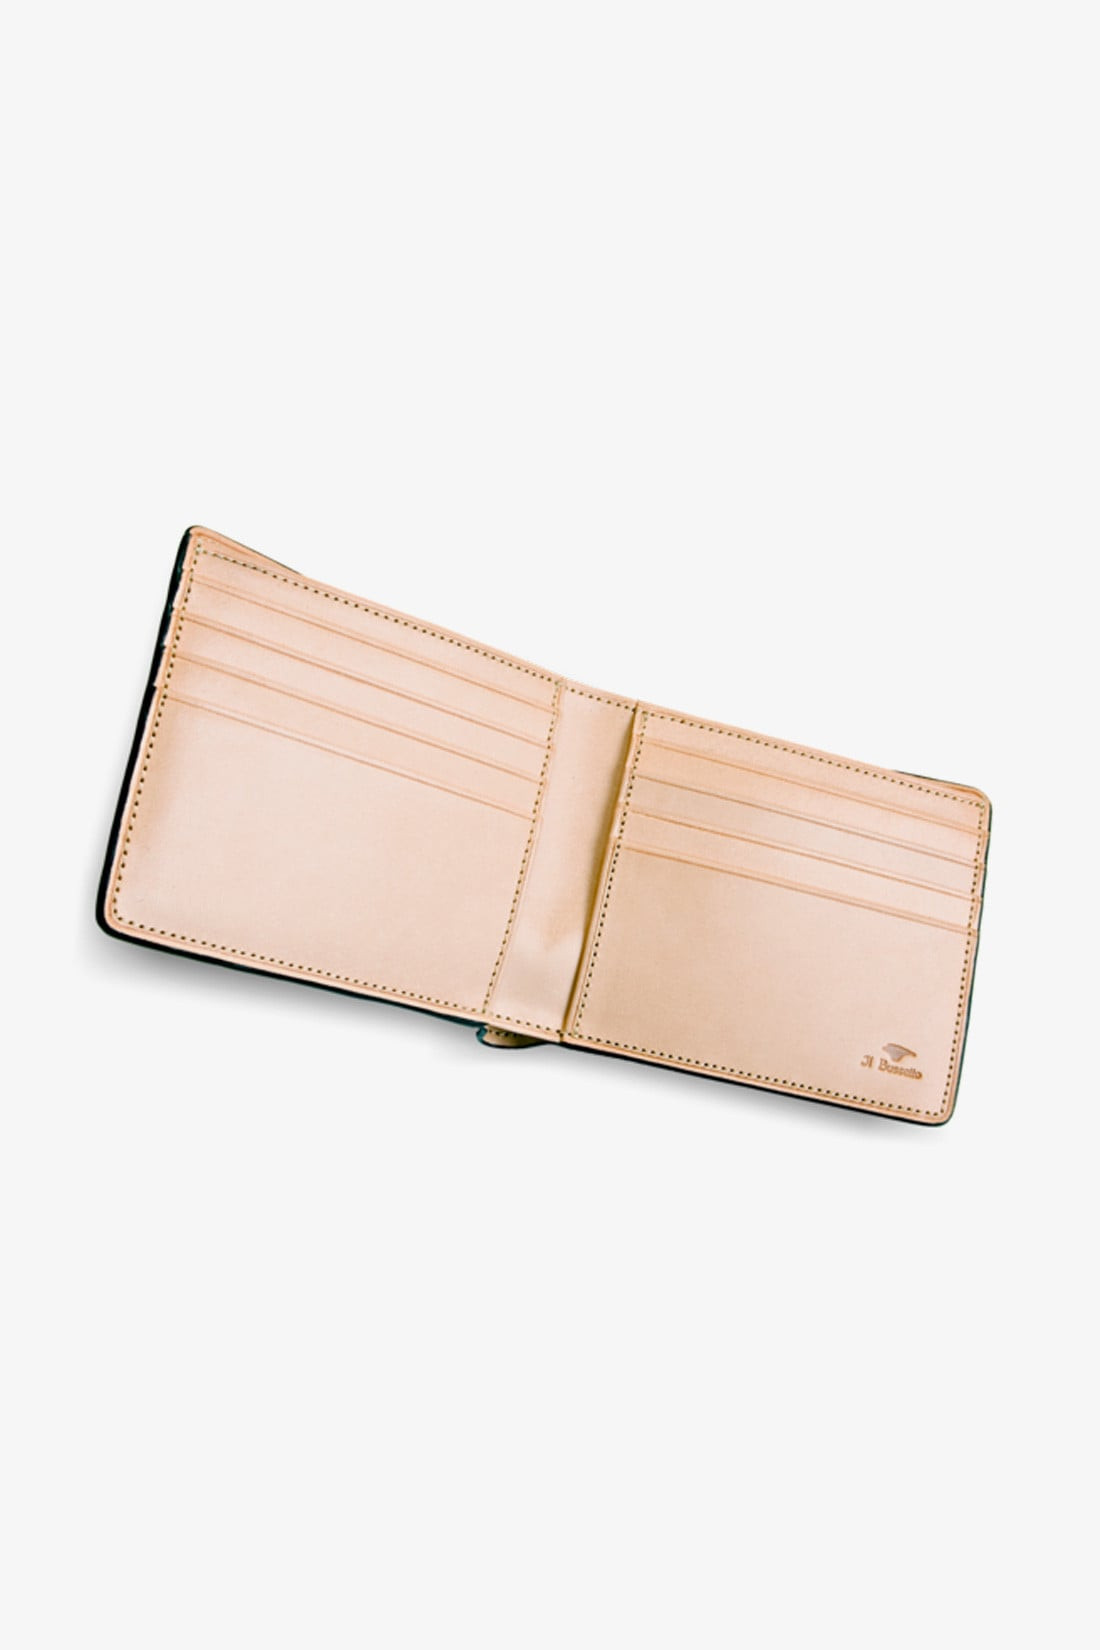 IL BUSSETTO / Bi-fold wallet w/ 8 card slots Forest green